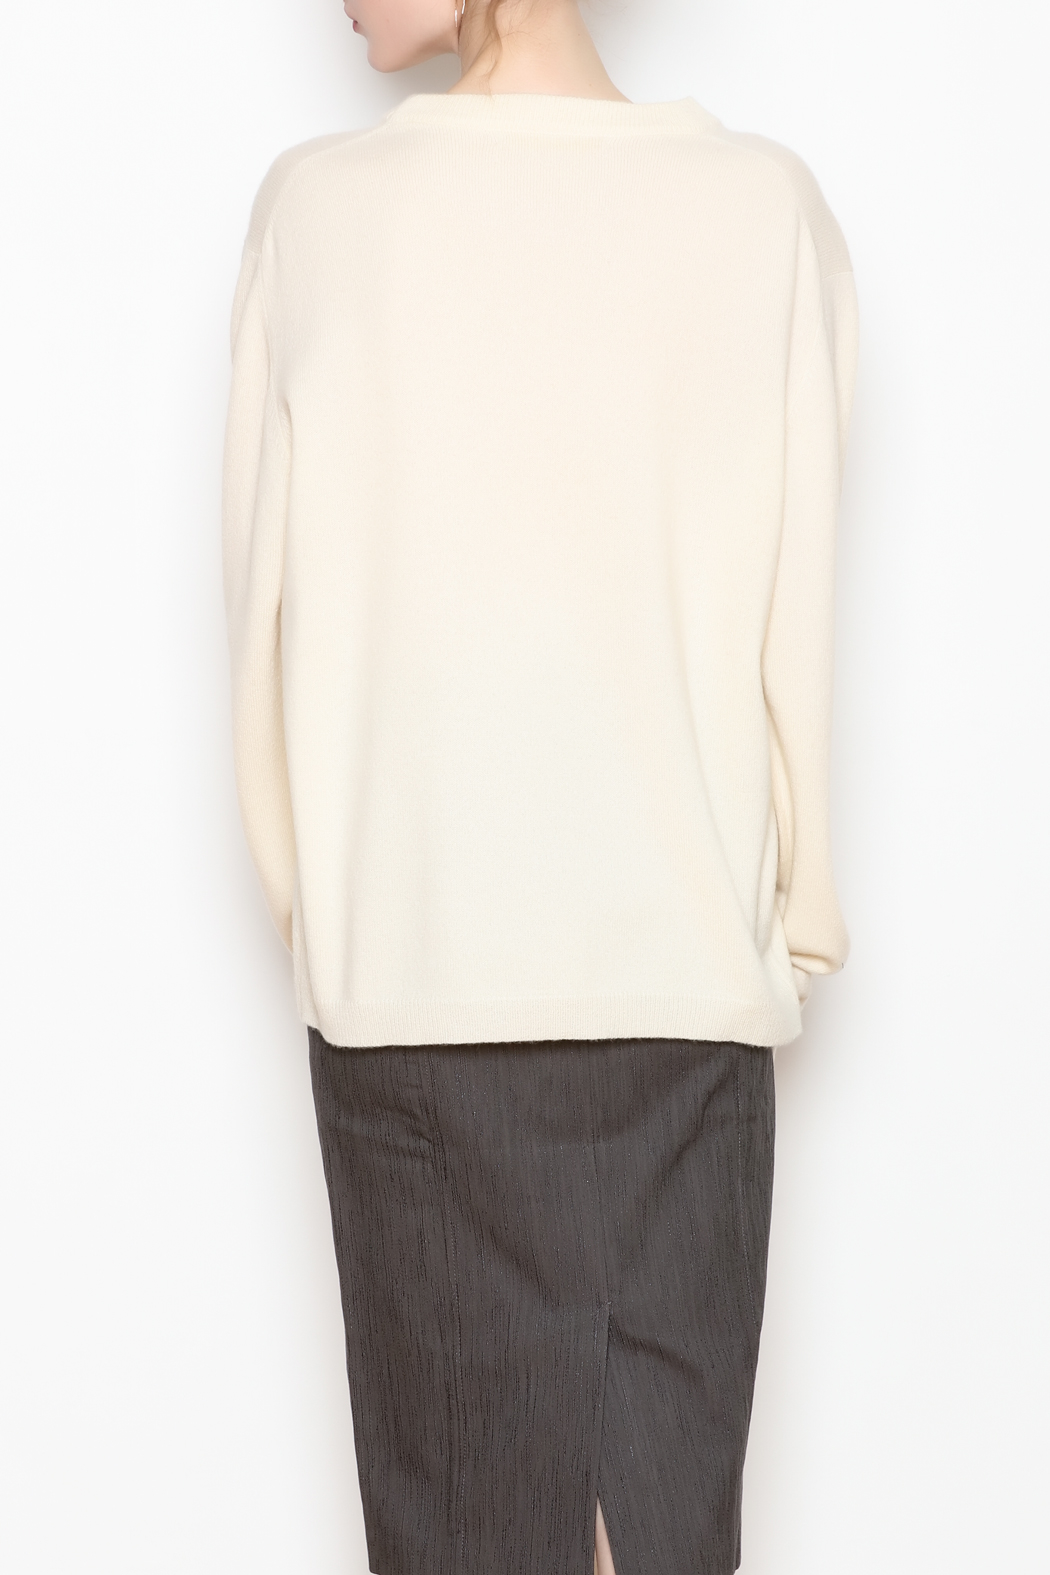 National Cashmere Roundneck Cashmere Sweater - Back Cropped Image